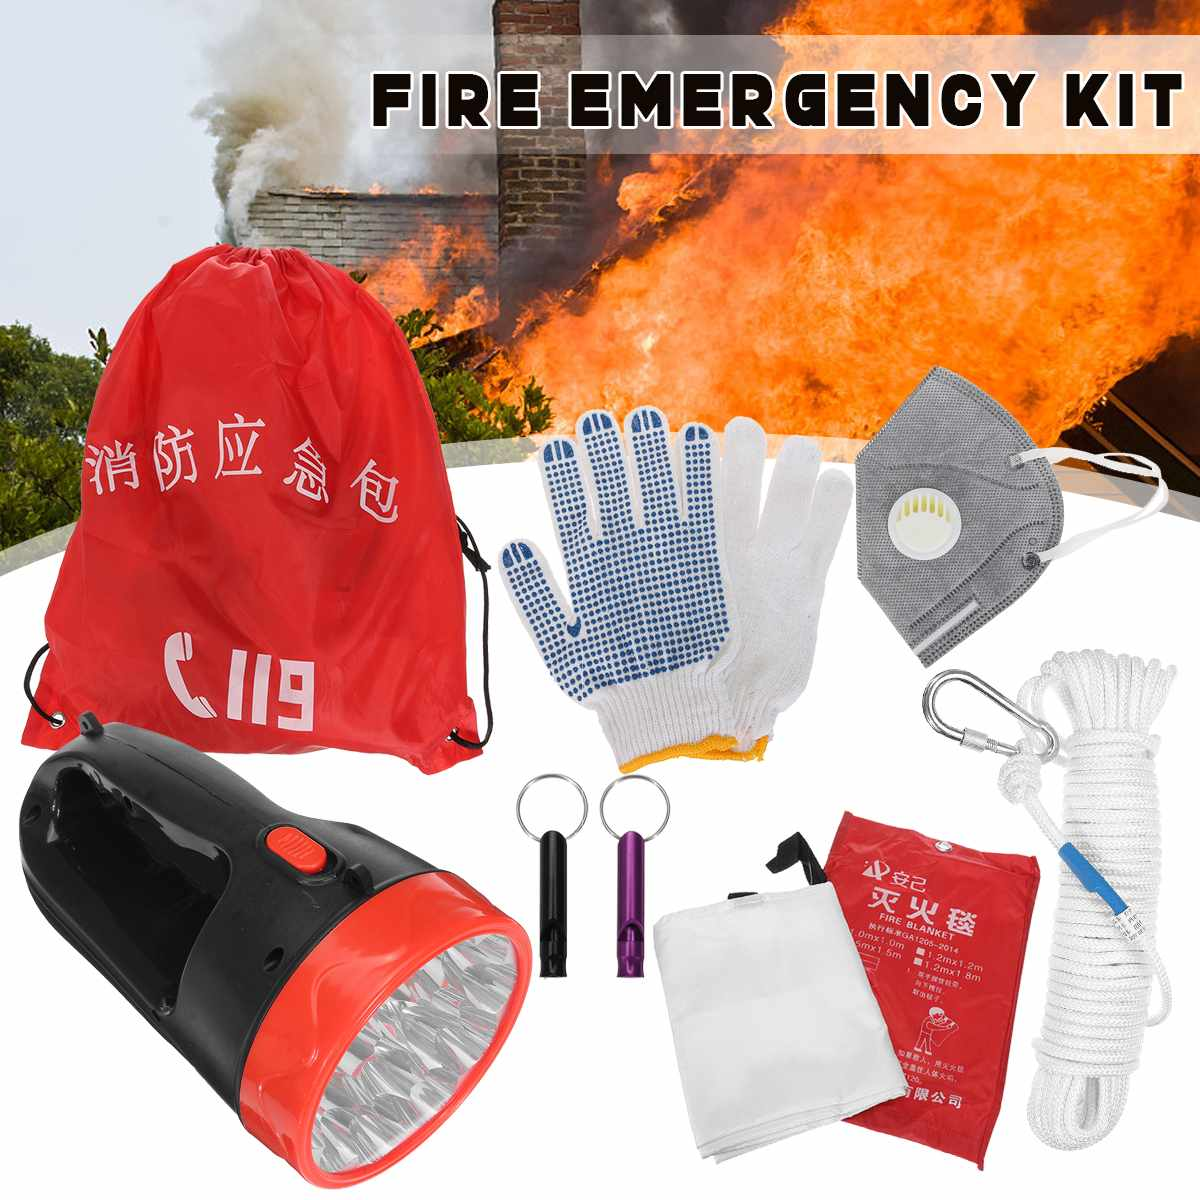 Family Fires Emergency Kit Descending Rope Mask Whistle Survival Tool Accessories First Aid Kit Bag Tactical Medical Traval Back